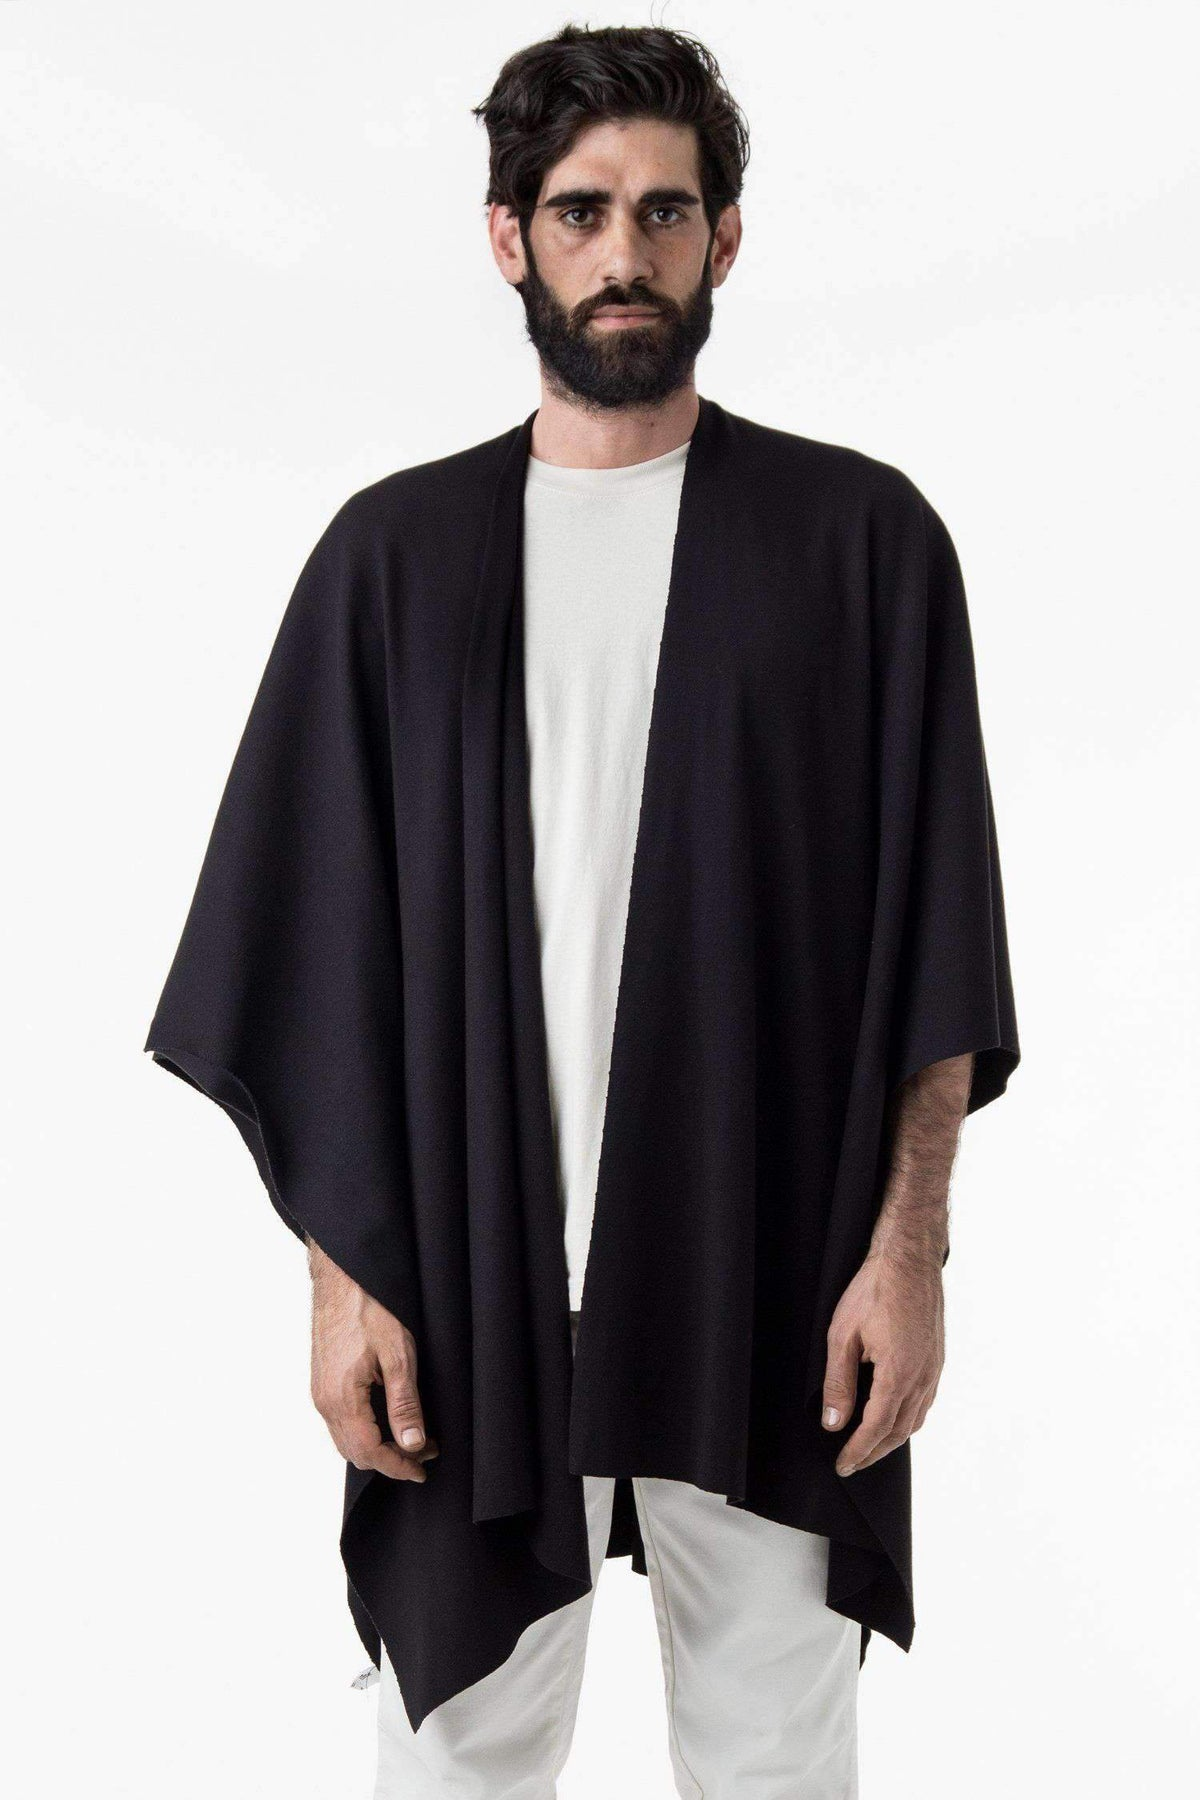 RHFR399GD - Heavy Cotton Rib Poncho Poncho Los Angeles Apparel Black